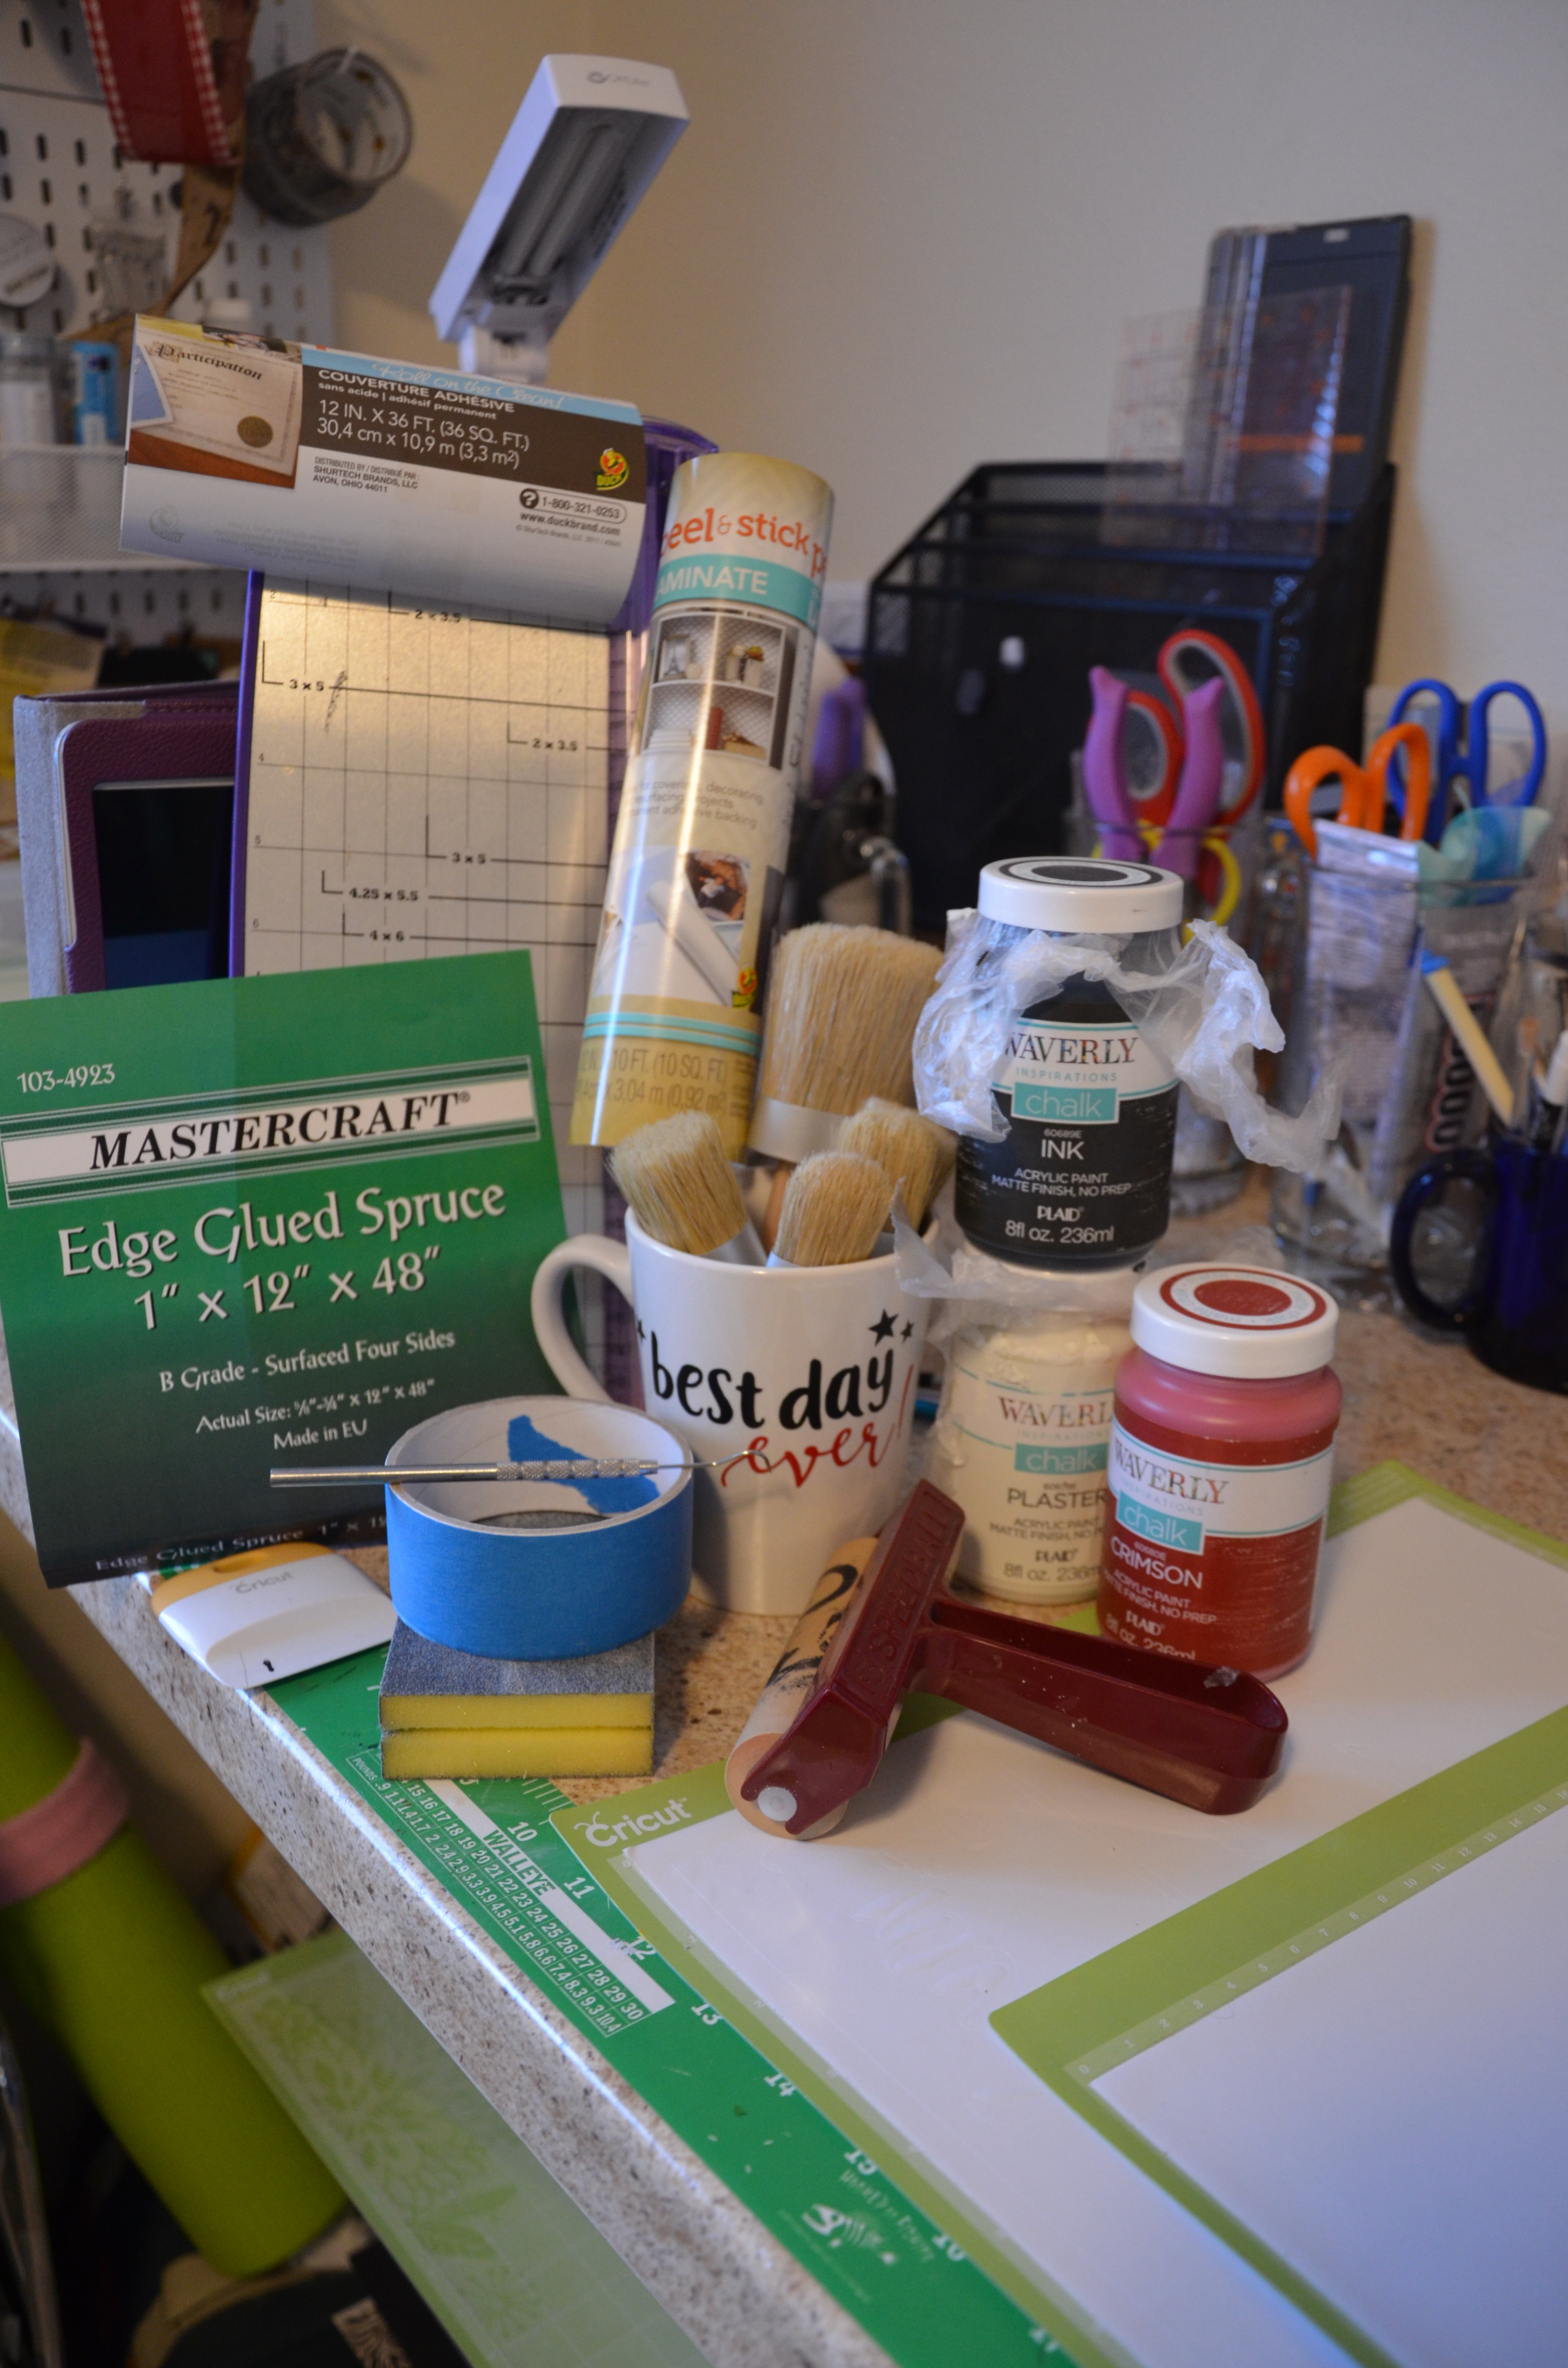 I want to make a wooden sign with my Cricut® Explore! Tell me what I